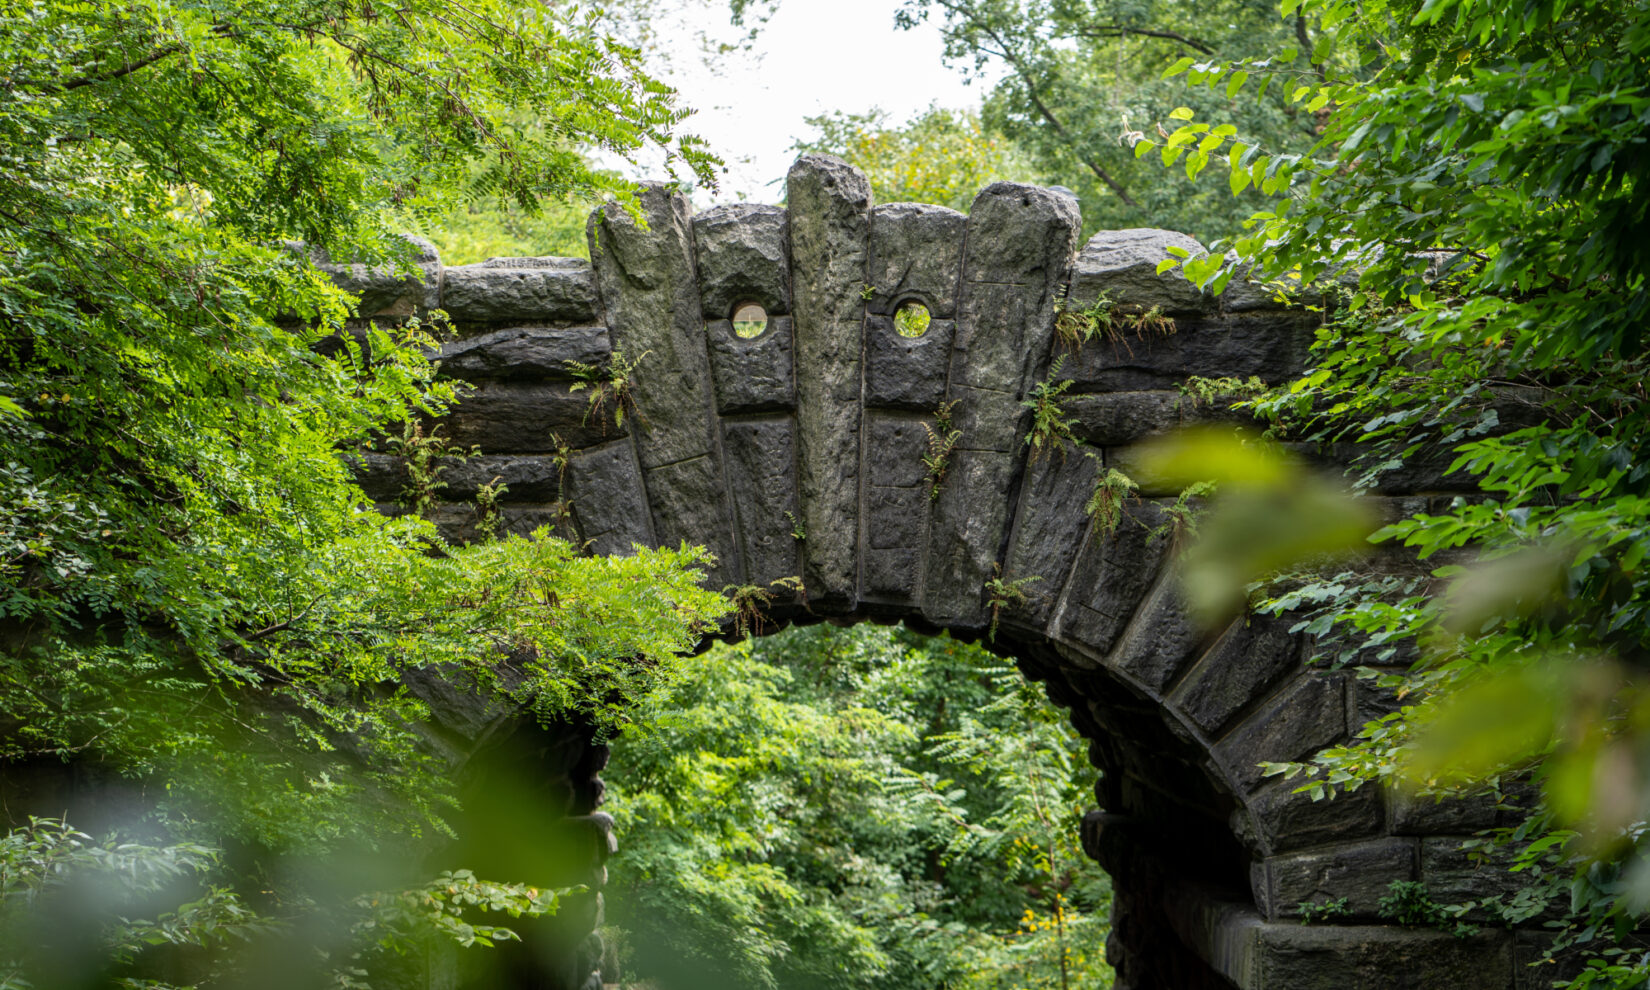 A detailed view of the masonry and keystones of the arch, surrounded by thick greenery.